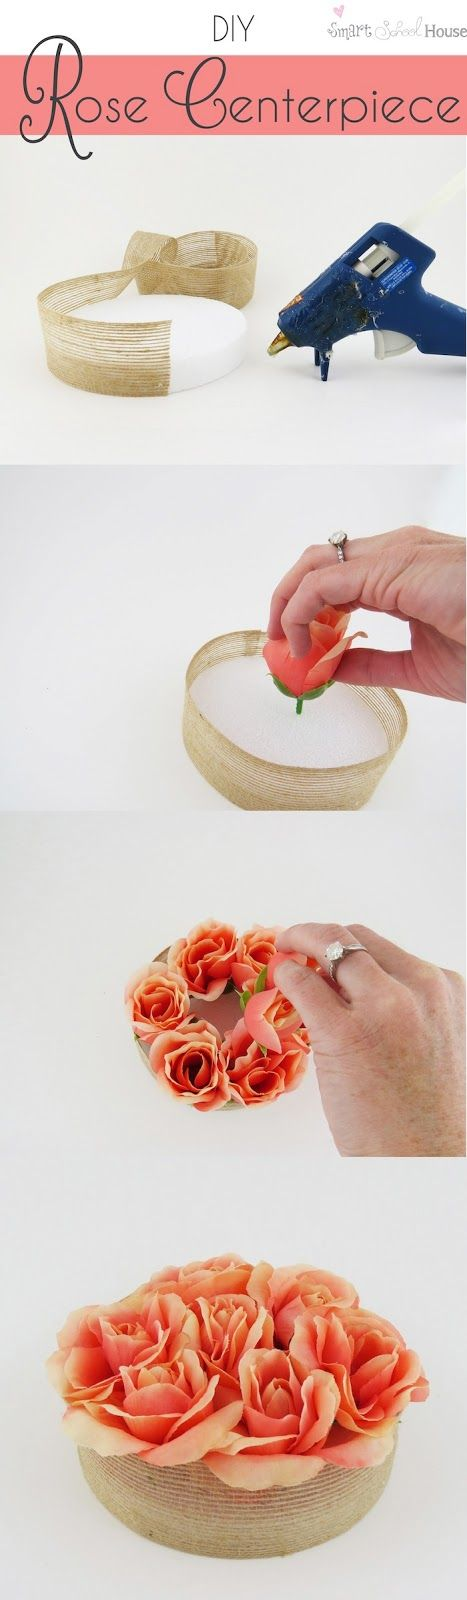 DIY Rose Centerpiece! Centro de mesa <3